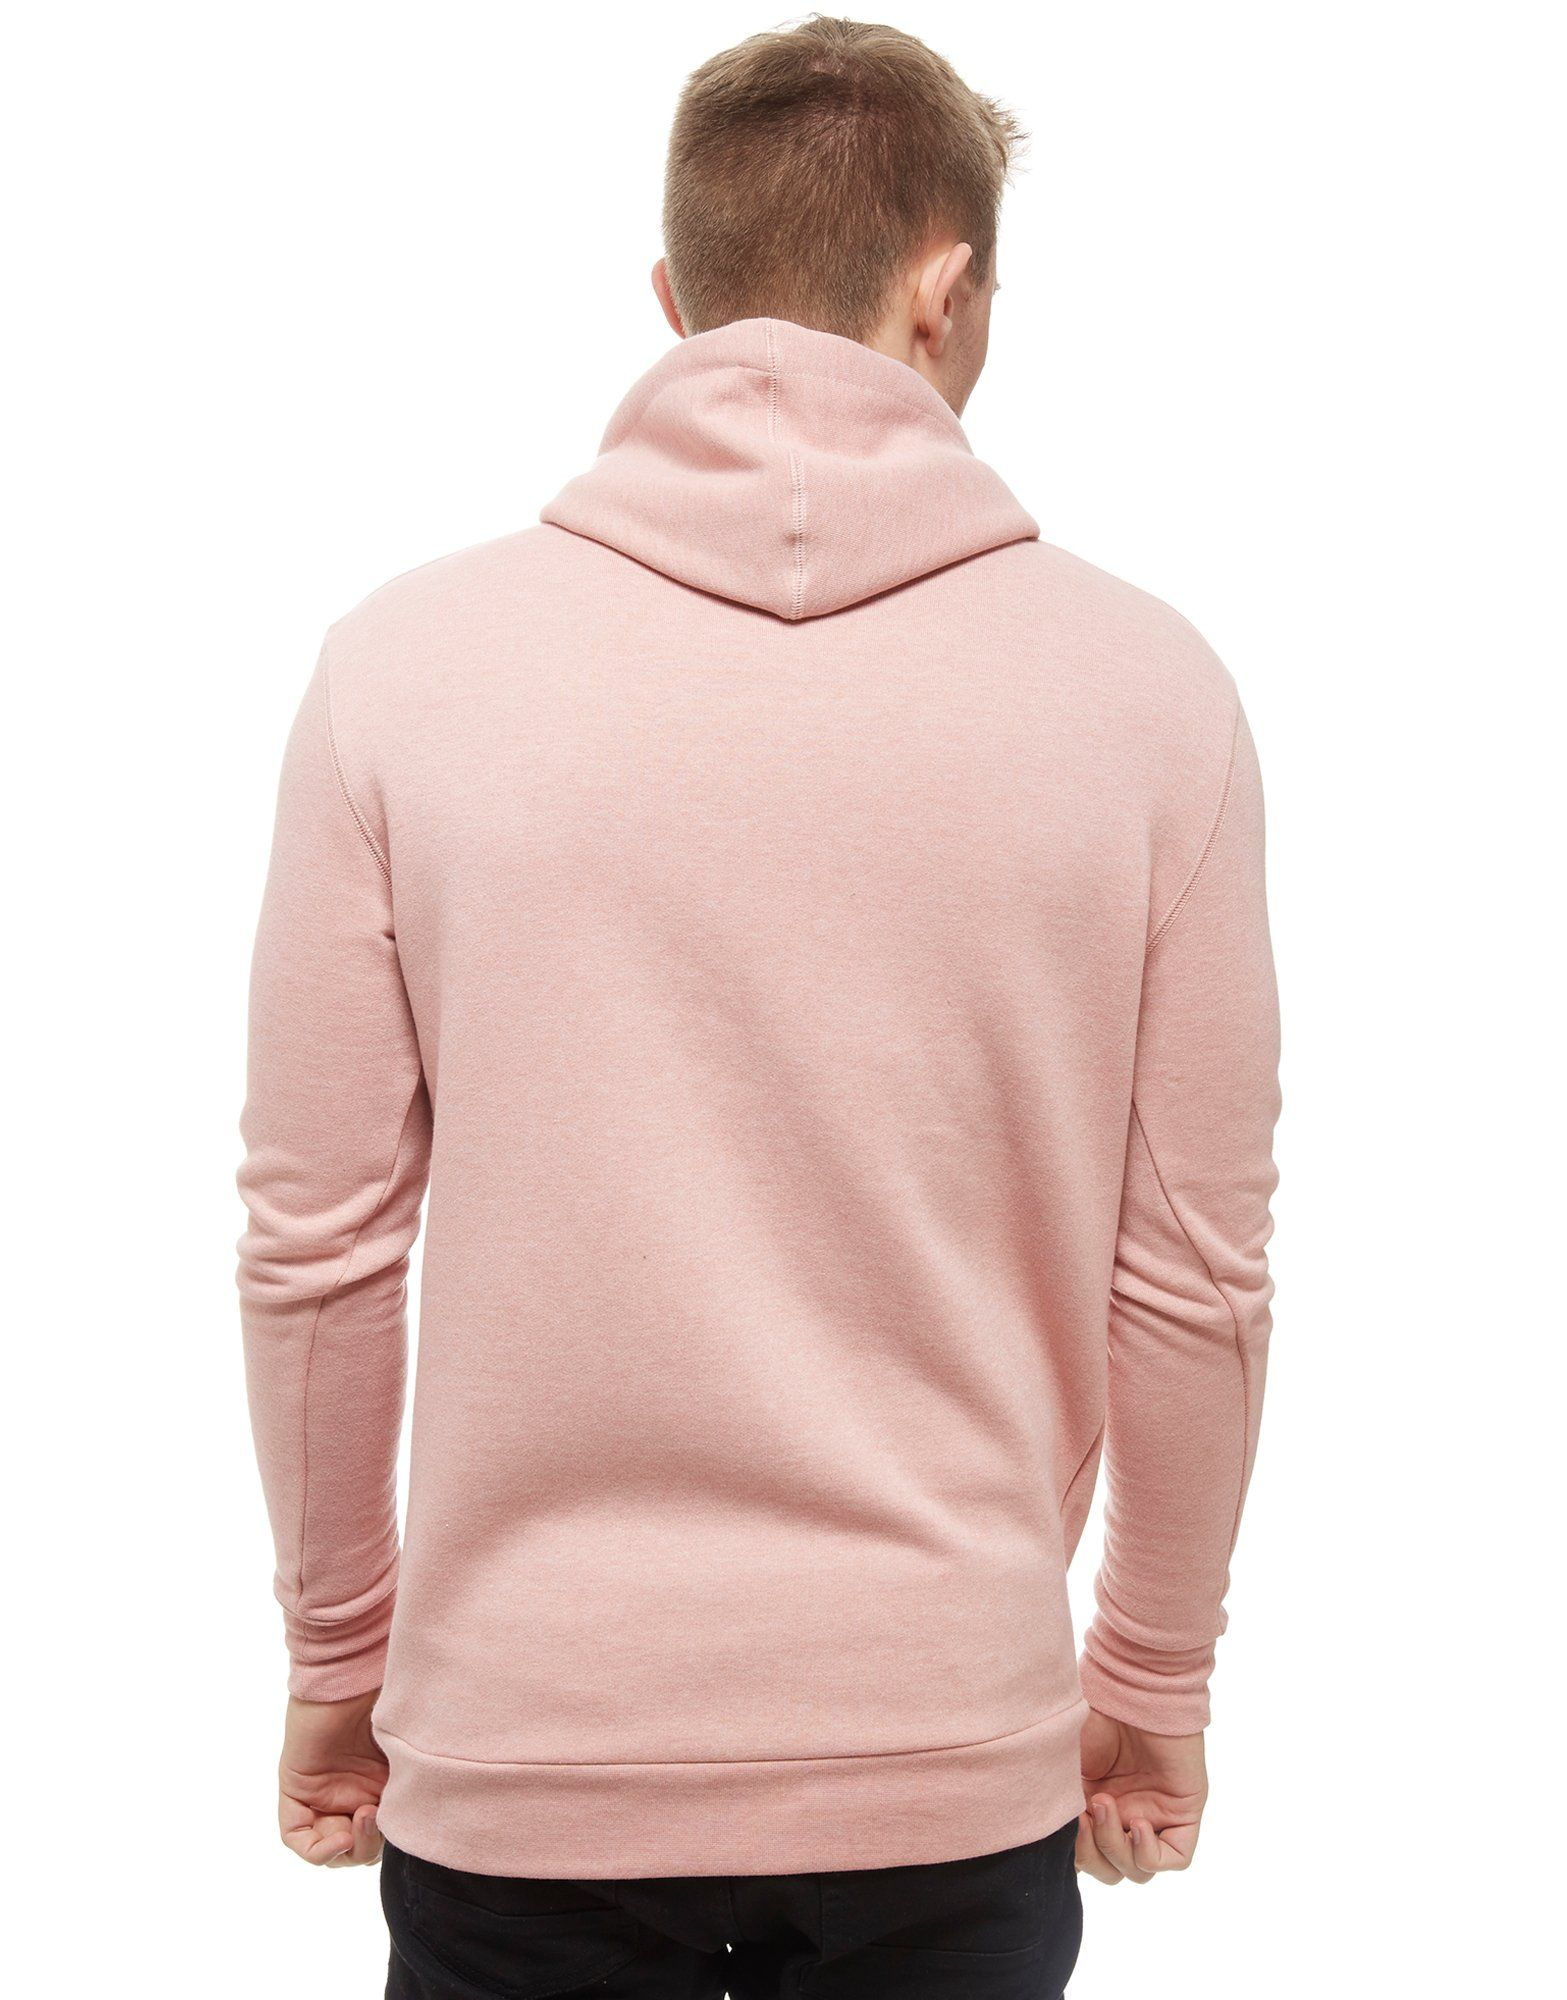 11 Degrees Core Fleece Overhead Kapuzenpullover Pink